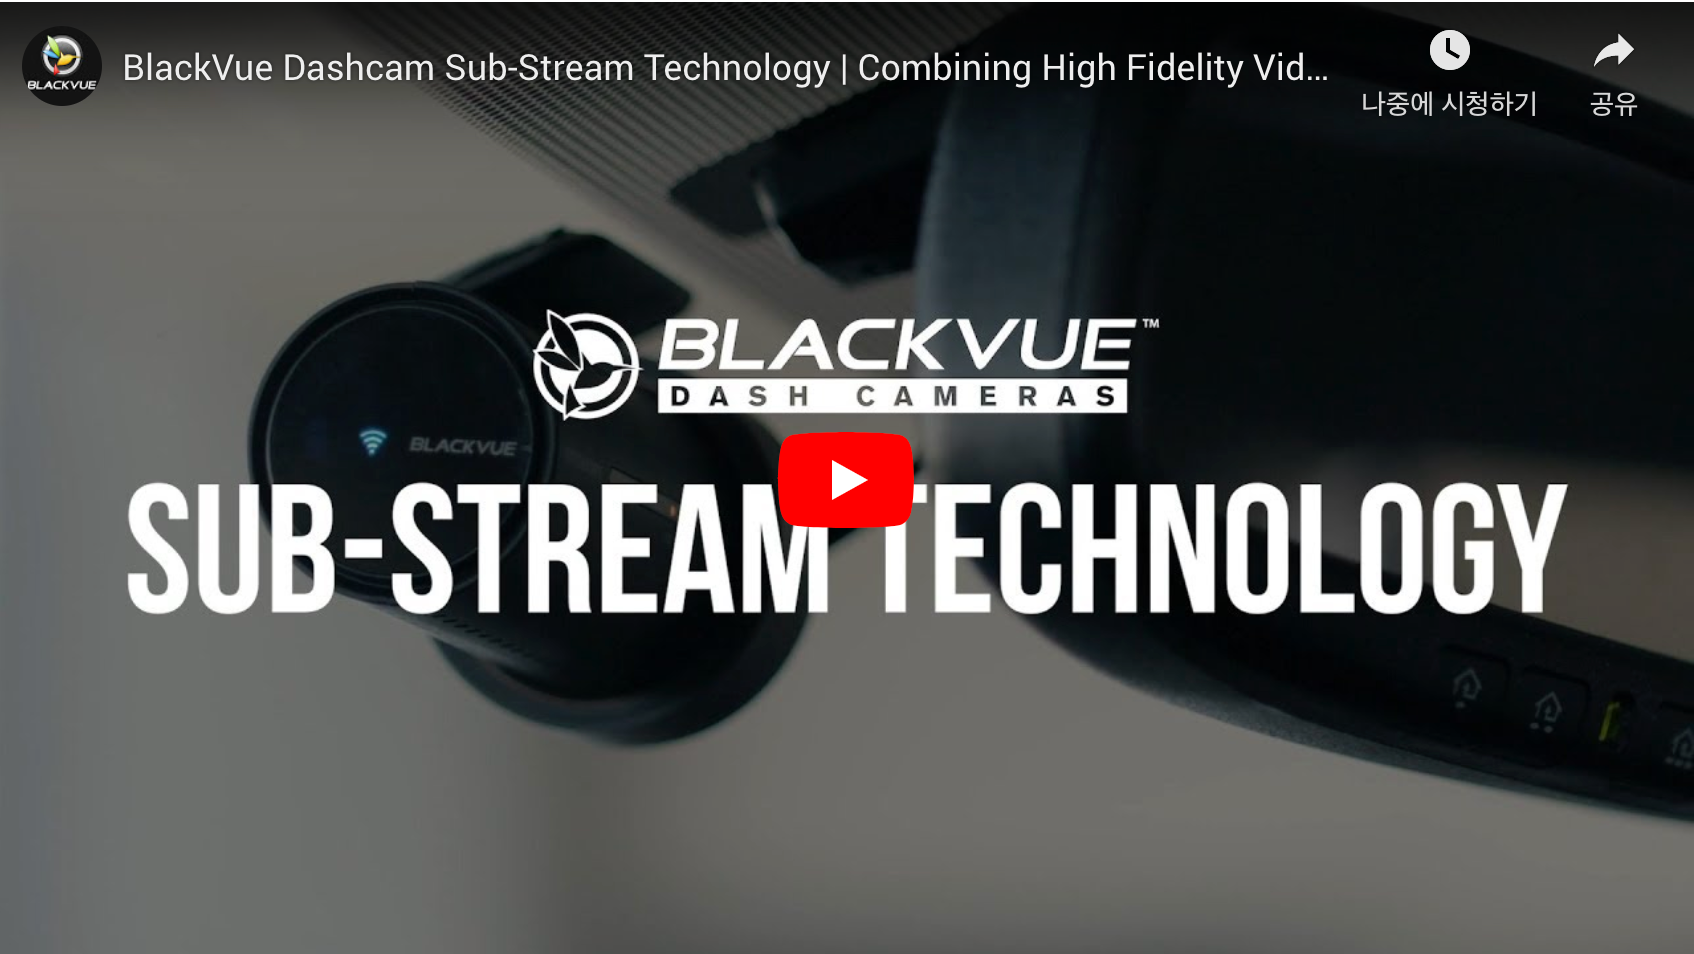 BlackVue Sub-Stream Technology